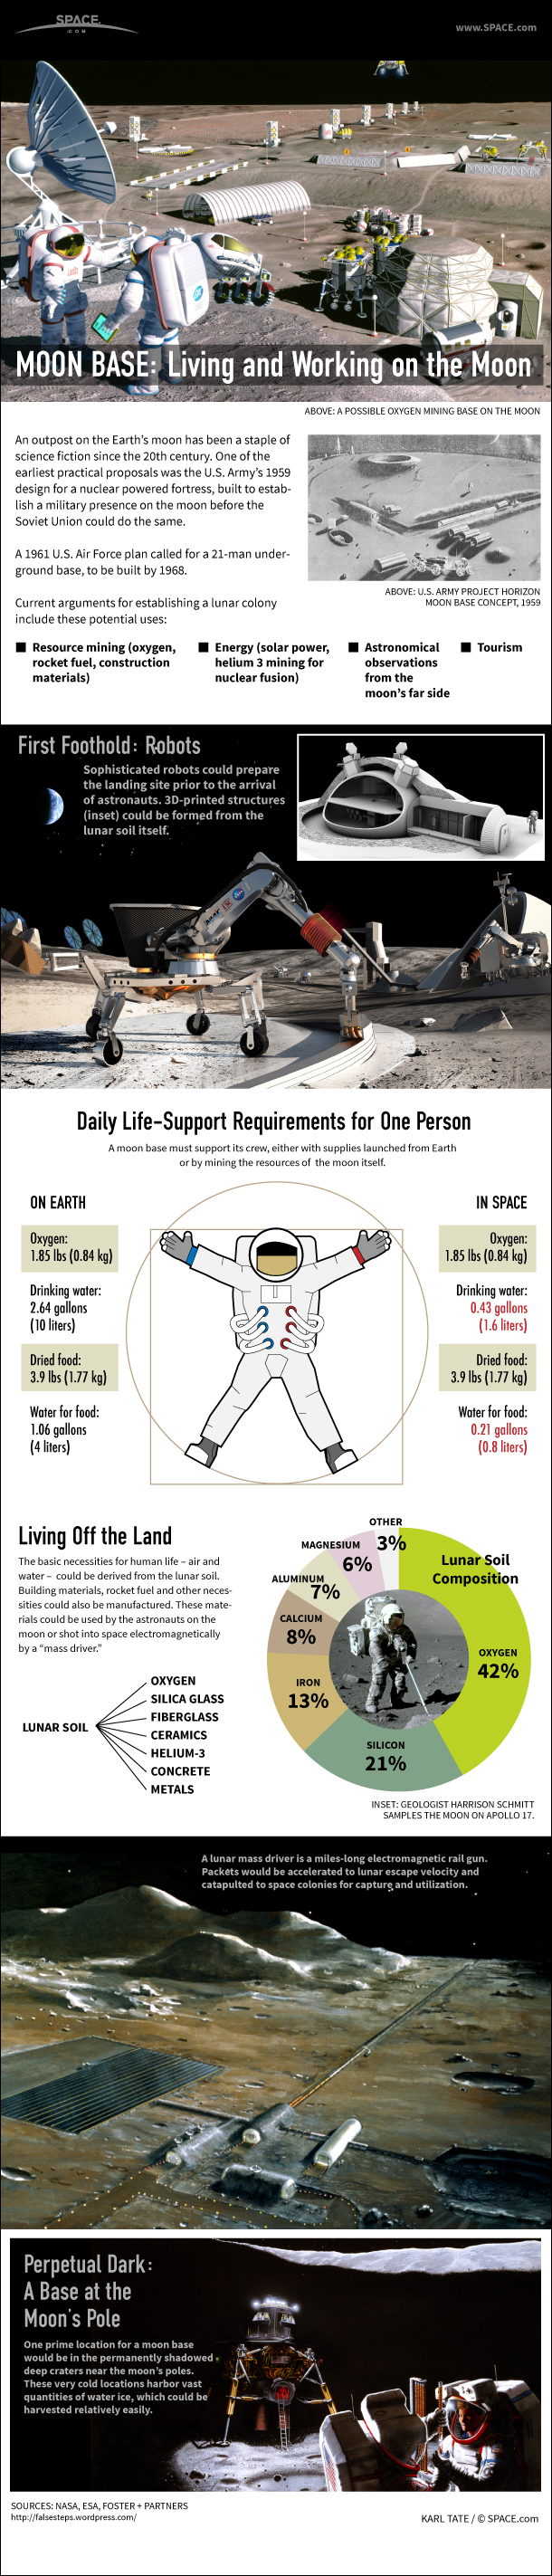 Home On the Moon: How to Build a Lunar Colony (Infographic)